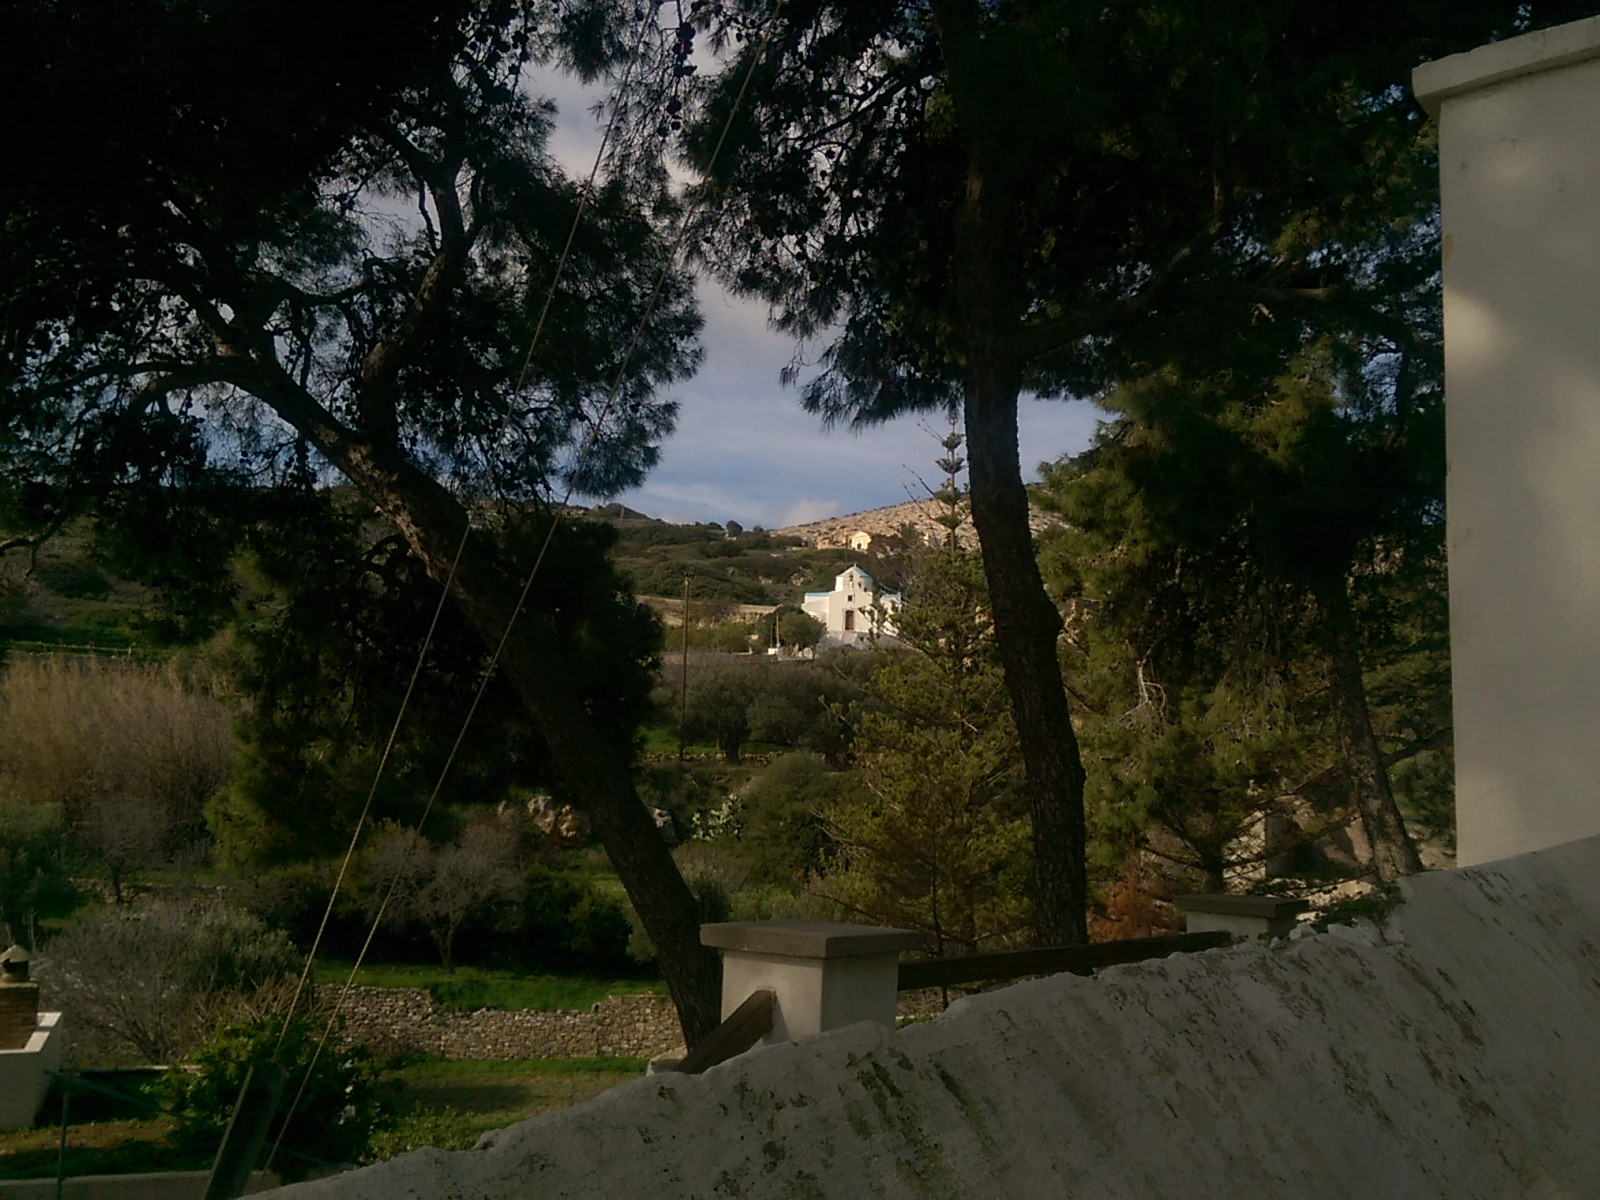 A view between two trees shows a distant white chapel